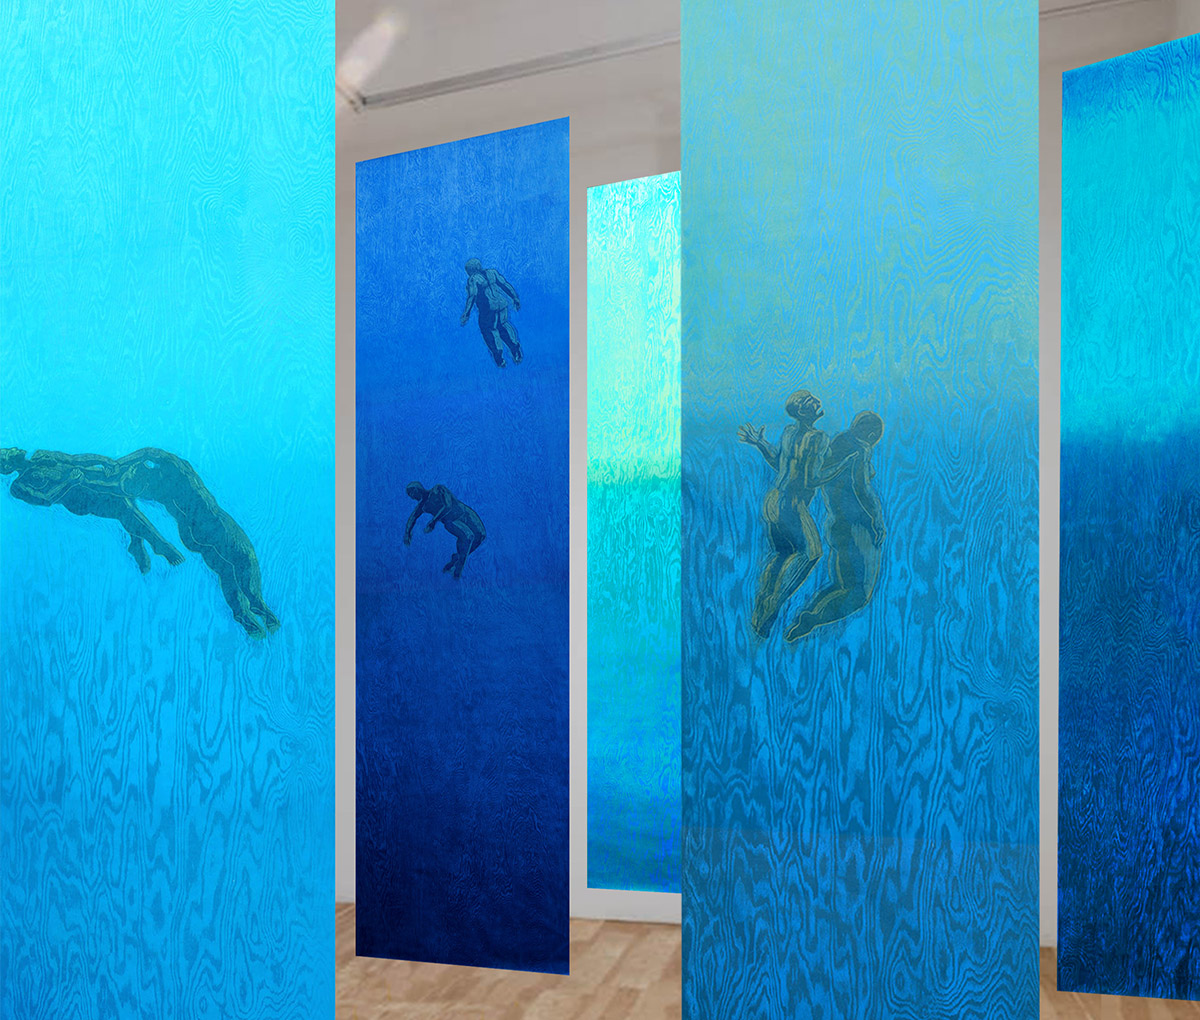 """Pamela Dodds / """"Undertow"""" / Simulated Installation / view 2 / 2021"""